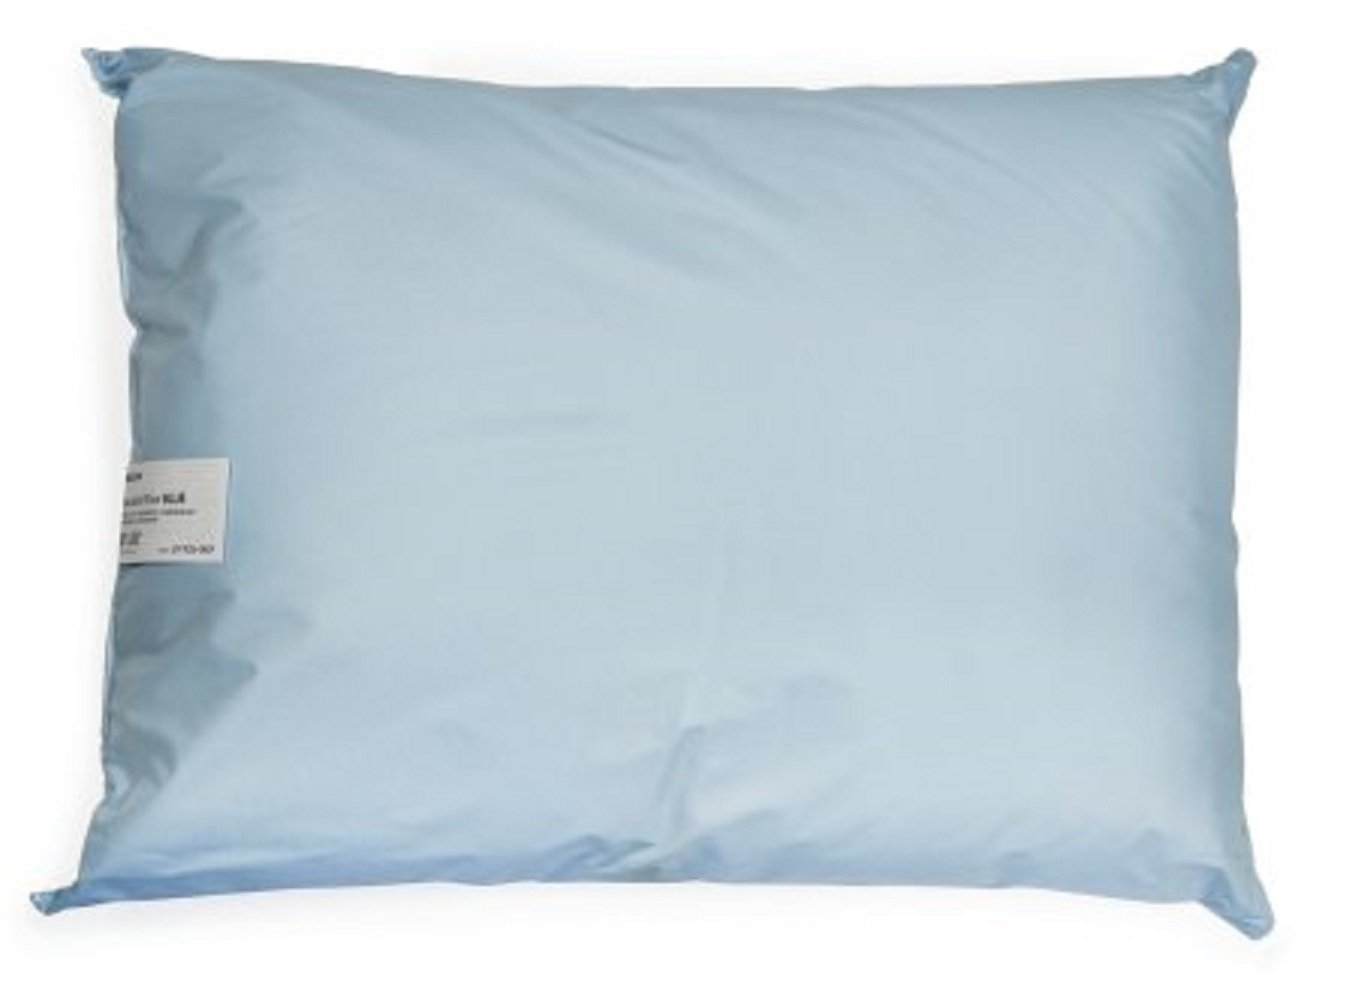 McKesson - Bed Pillow - 20 X 26 Inch - Blue - Reusable - 12/Case - McK